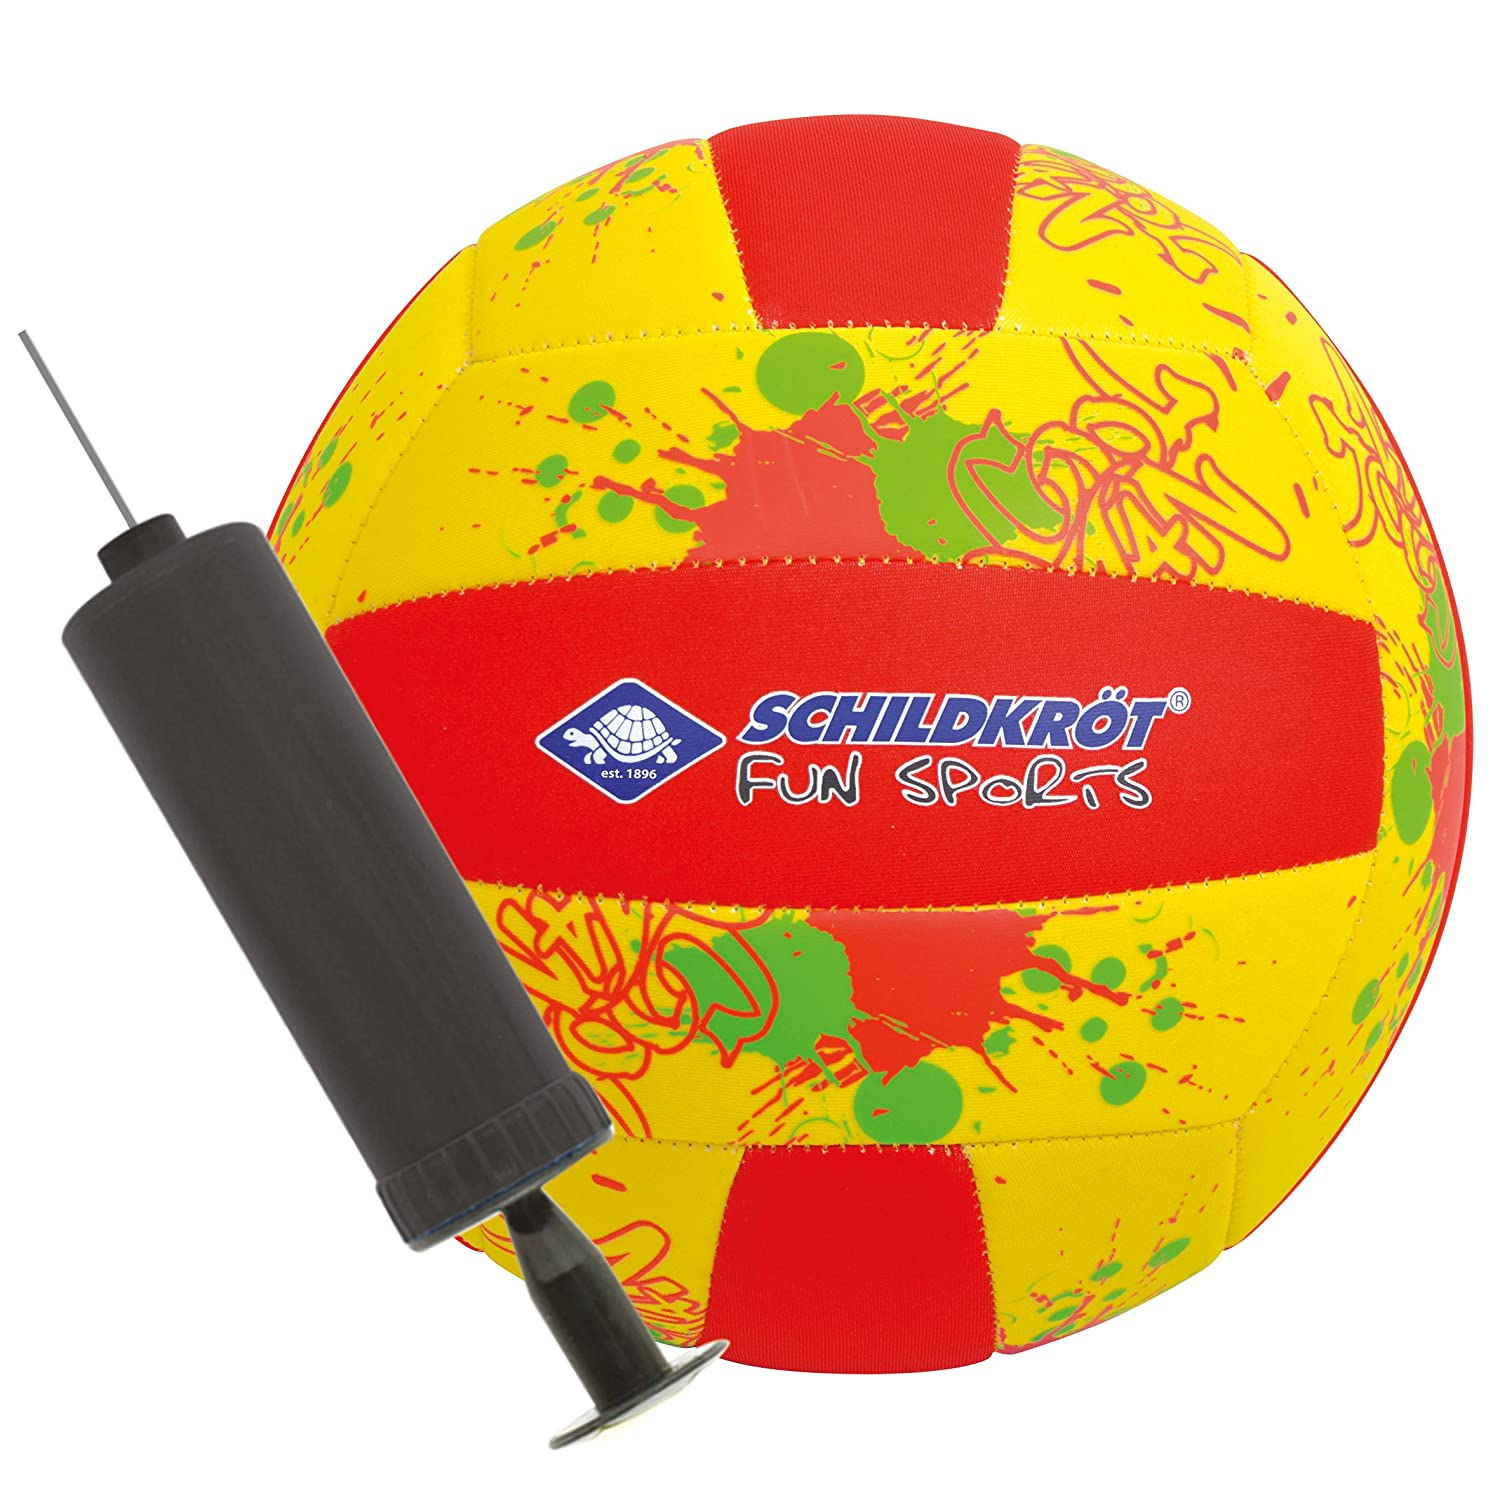 Schildkröt Fun Sports 970286 Ballon de Beach-Volley Mixte Enfant, Multicolore,